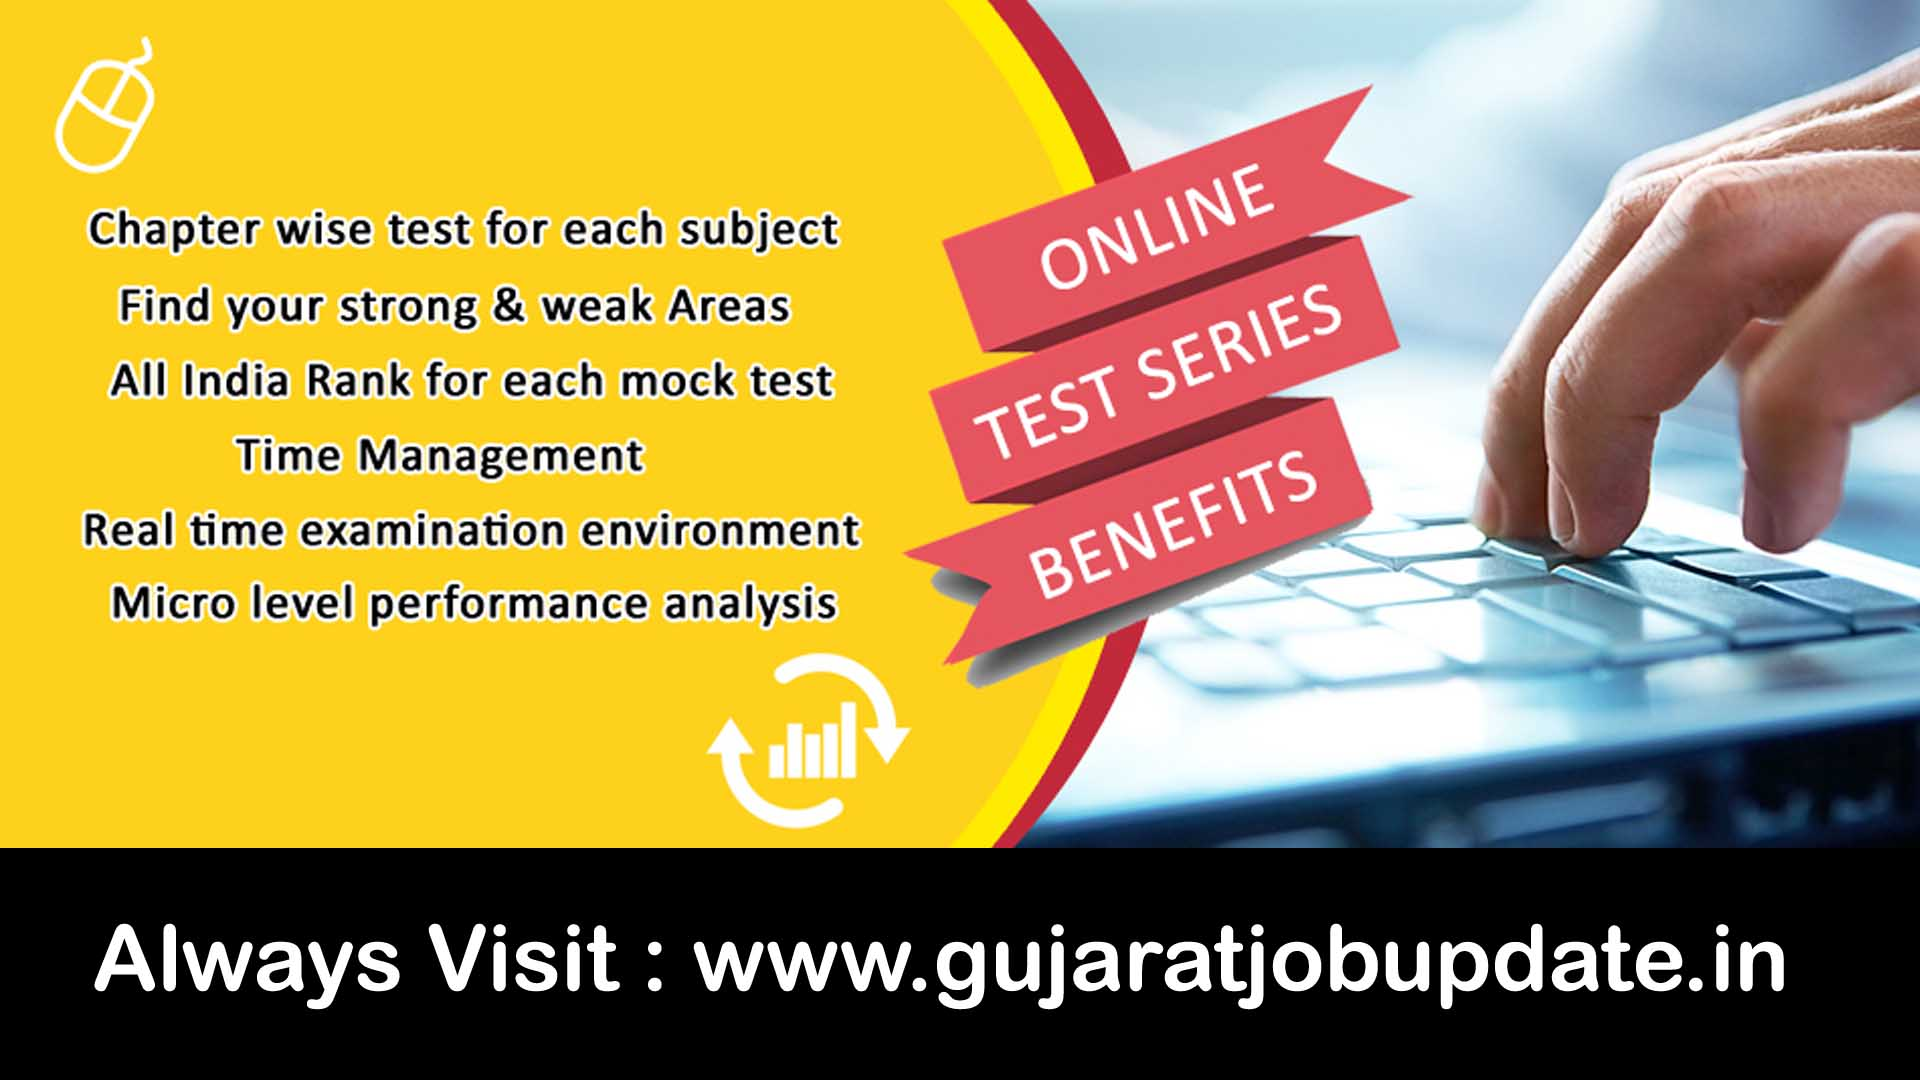 Online Test Series for History of Gujarat